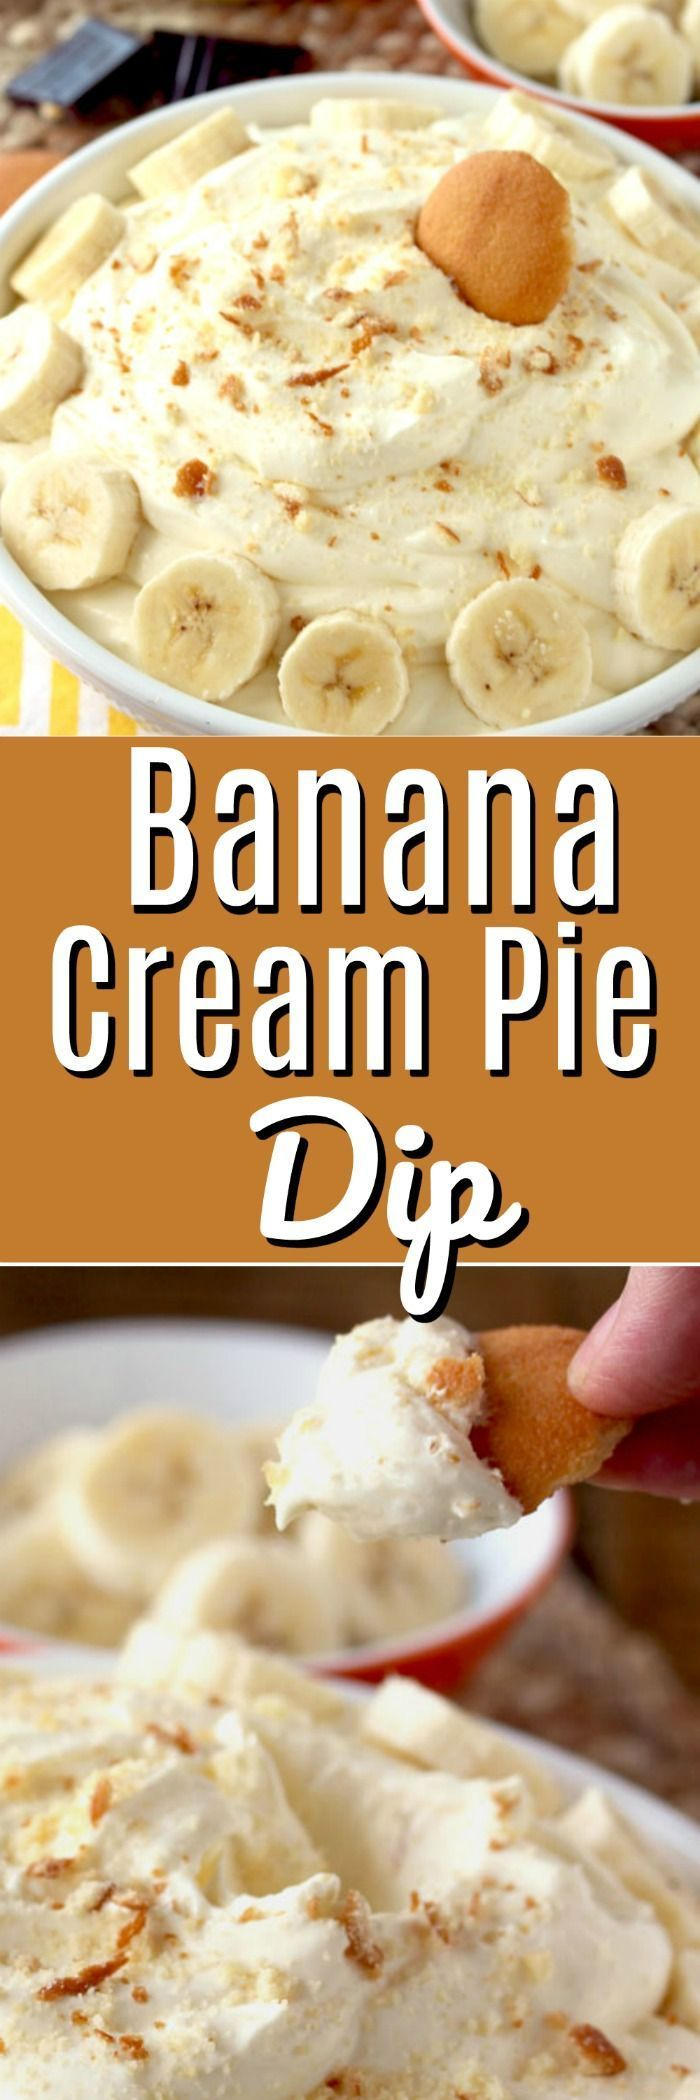 This Banana Cream Pie Dip is sweet, silky, smooth, creamy and irresistible! Everything you love in a banana cream pie recipe but in a super easy and quick dip. With only a handful of ingredients, this no-bake dip is the perfect sweet treat for just about any occasion! #creampie #banana #bananacreampie #dip #appetizer #dessert #bananapudding #nilla #nillawafers #grahamcracker #easydessert